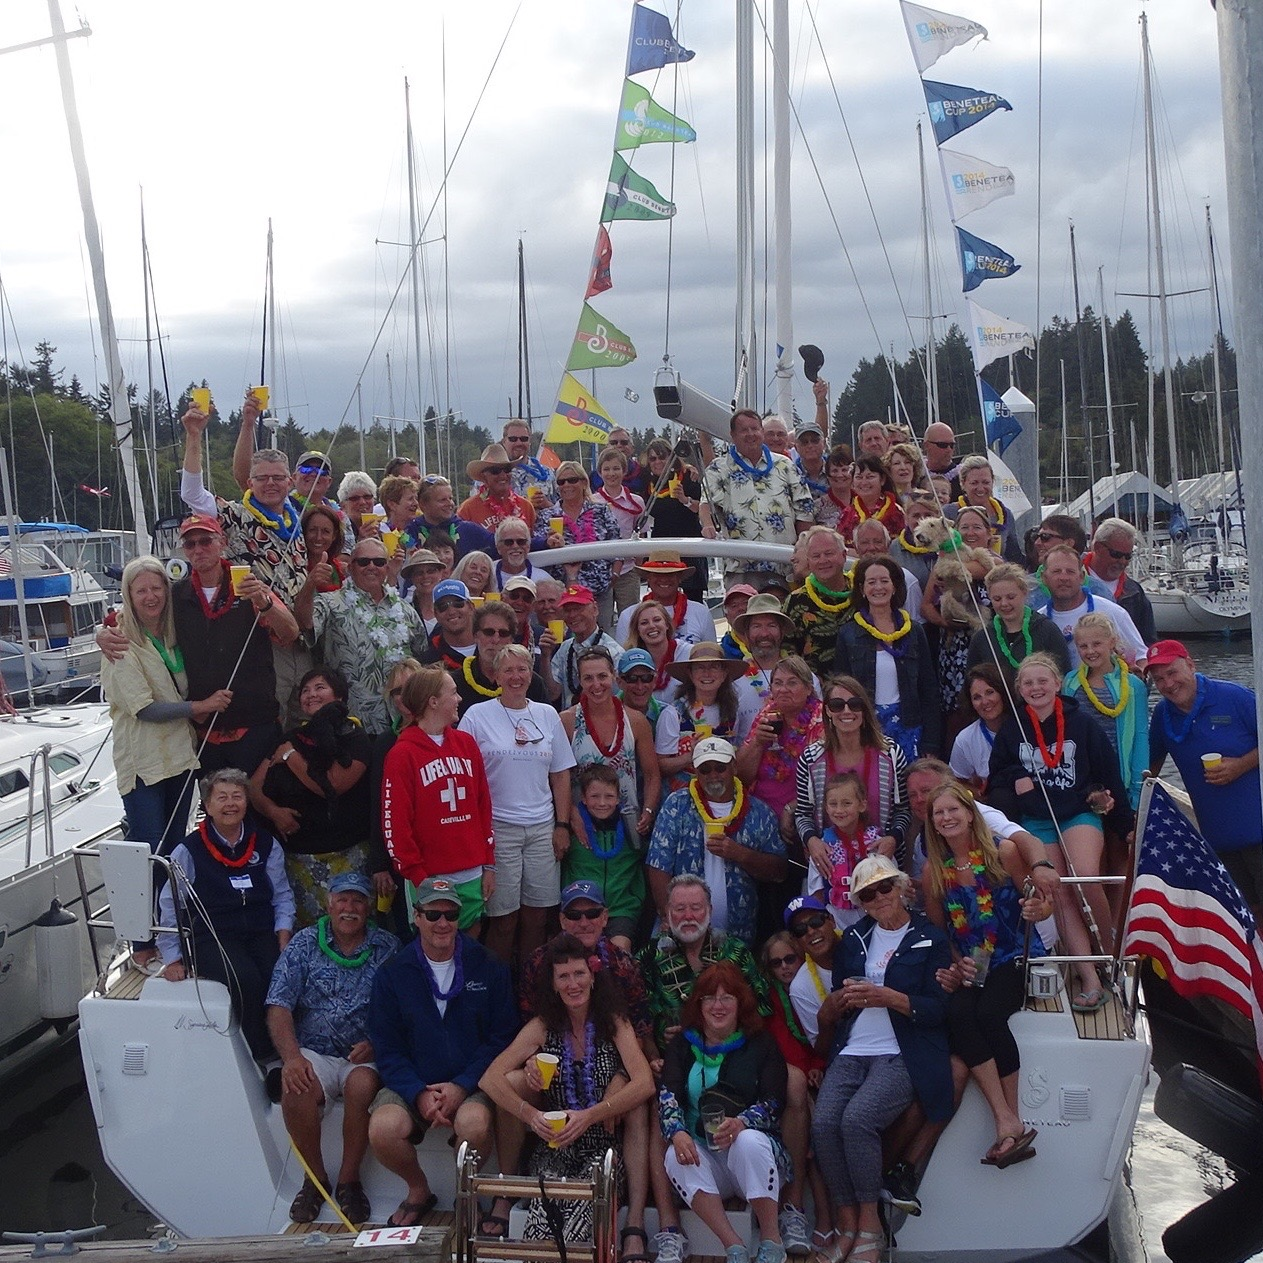 Pacific Northwest Beneteau Rendezvous August 25th-27th, 2017